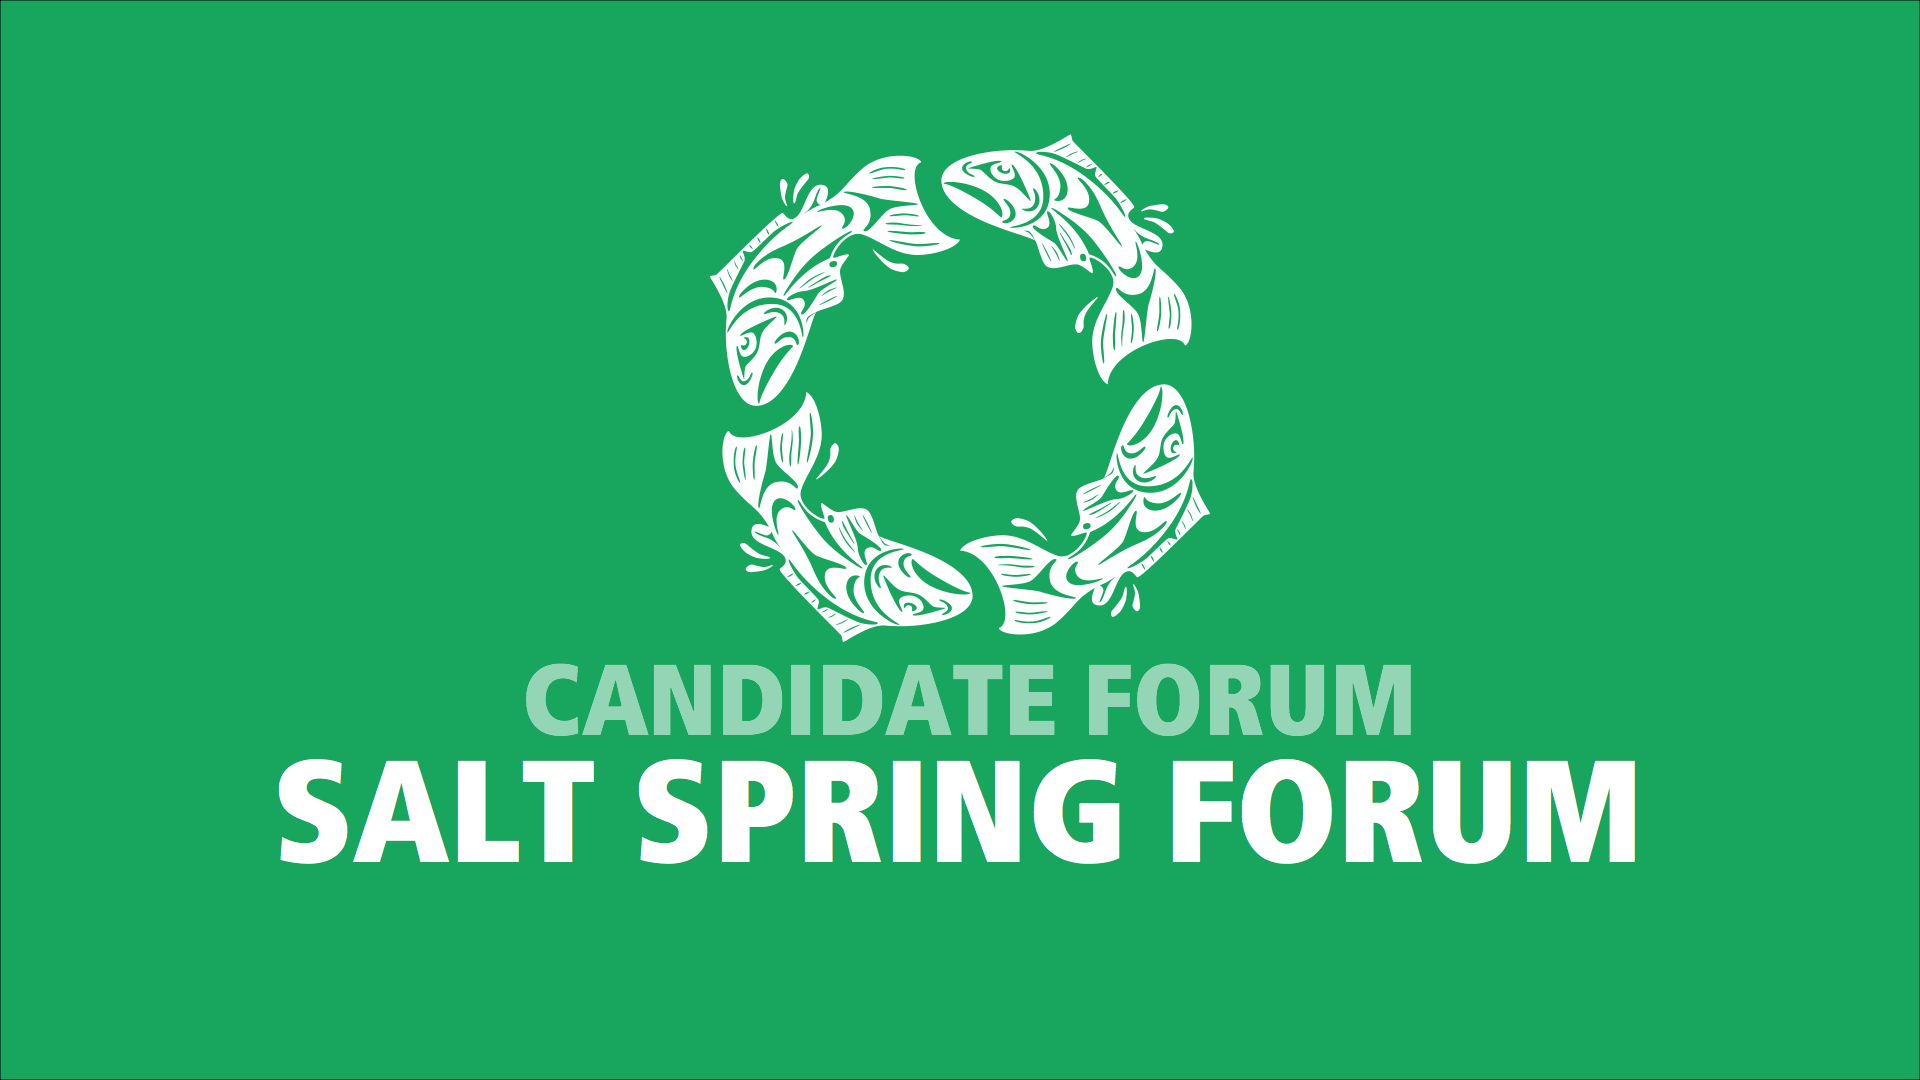 Candidate Forum hosted by Salt Spring Forum